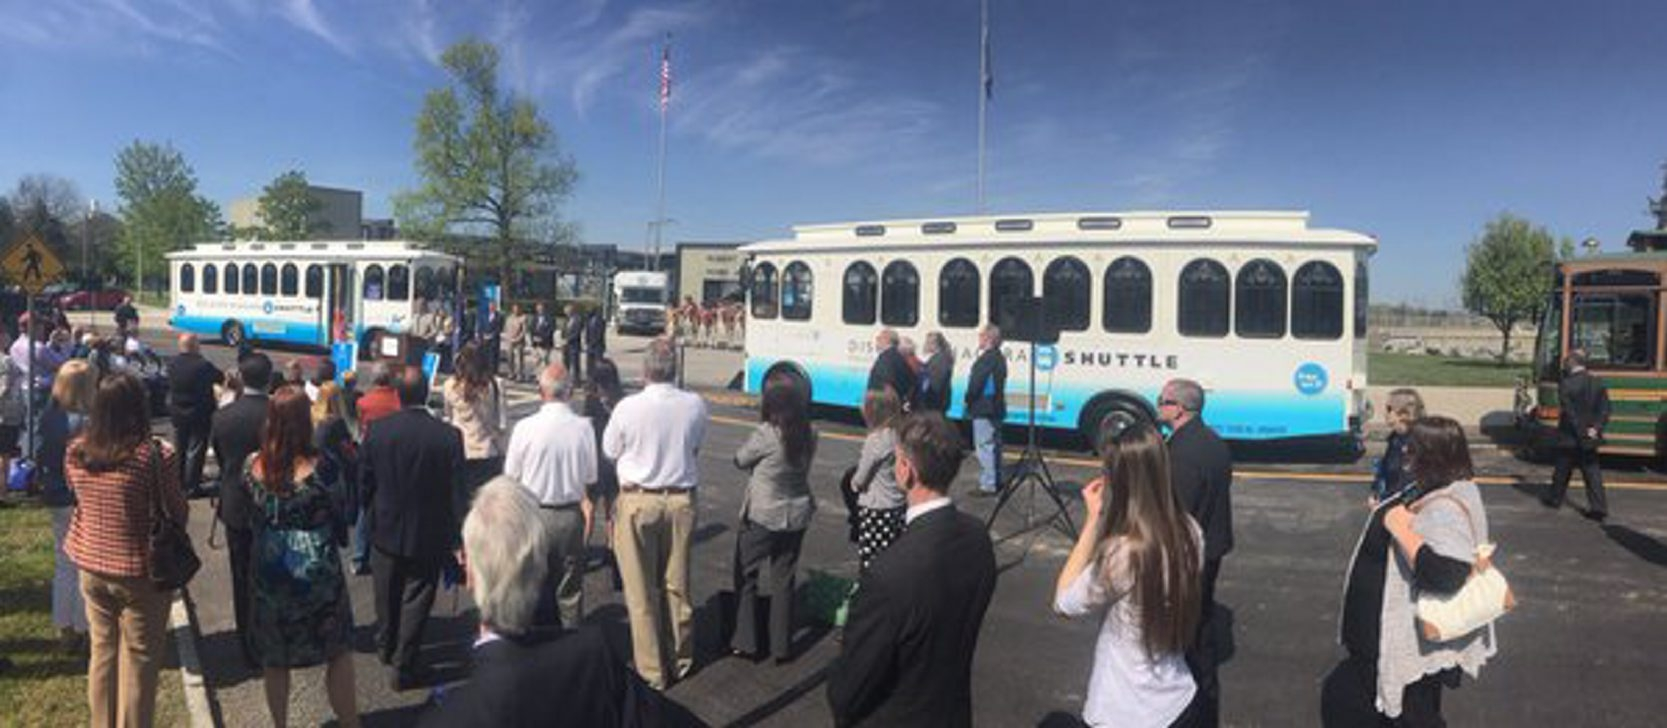 New tourist trolley in Niagara Falls will travel a 14-mile route. (John Hickey/Buffalo News)